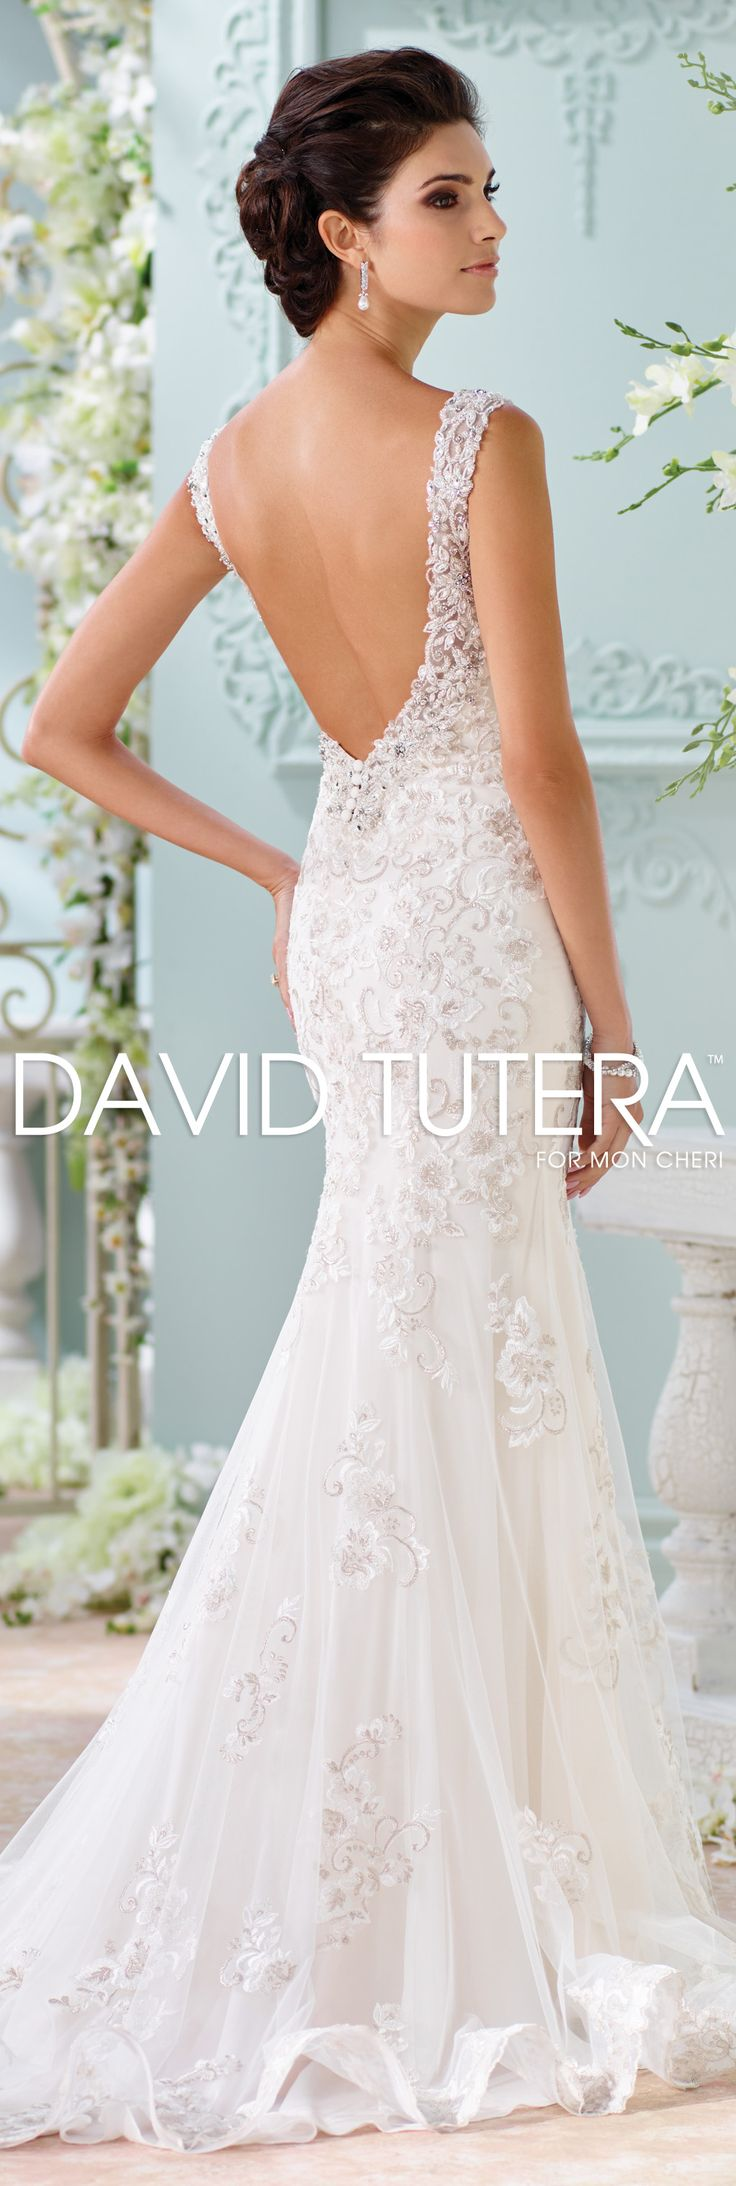 The David Tutera for Mon Cheri Spring 2016 Wedding Gown Collection - Style No. 116220 Colesha #laceweddingdresses